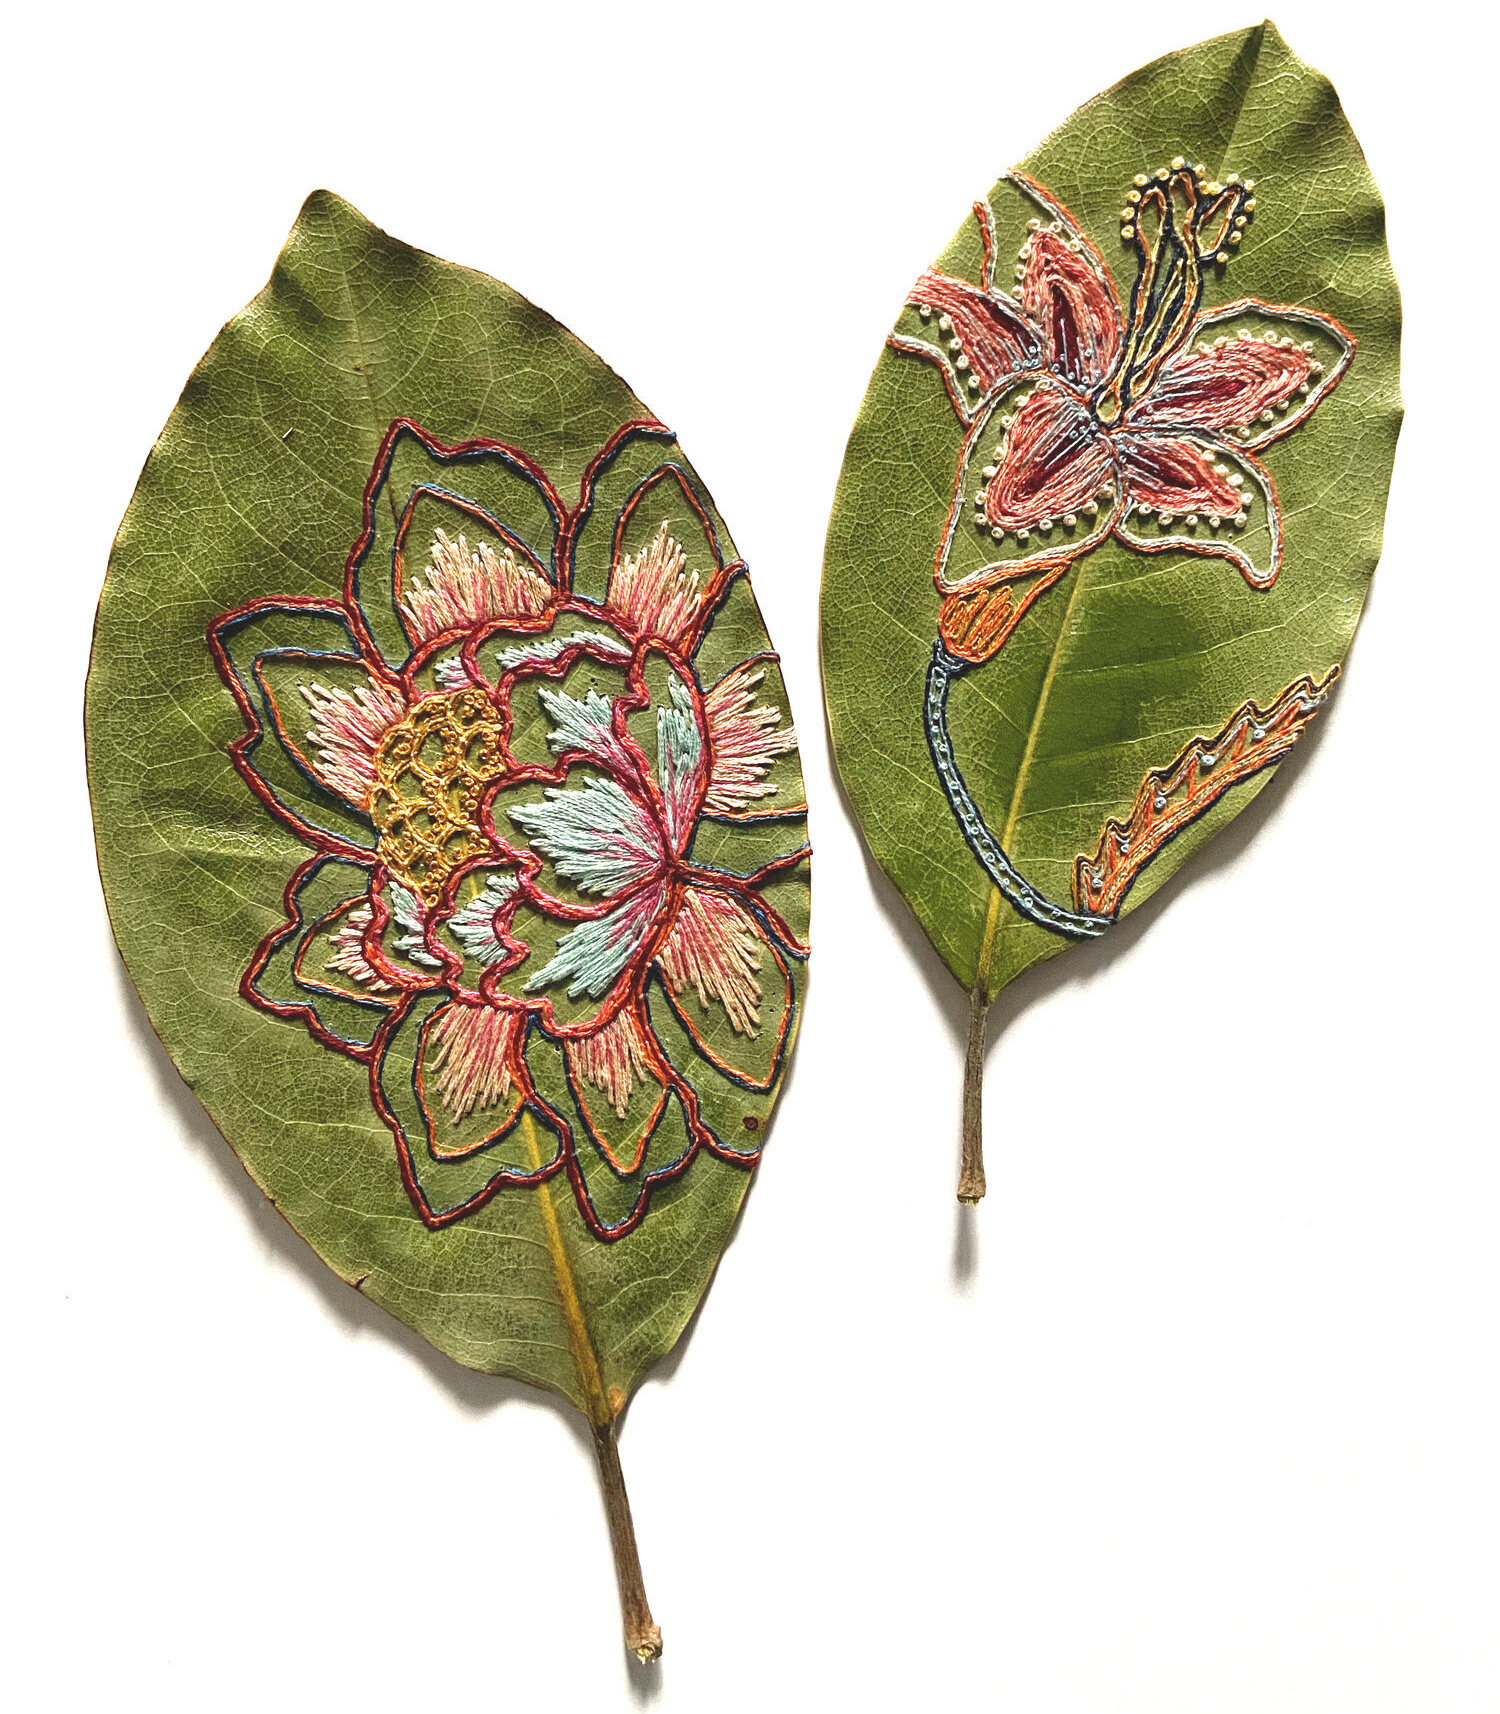 Dried leaves embroidered with beautiful botanicals